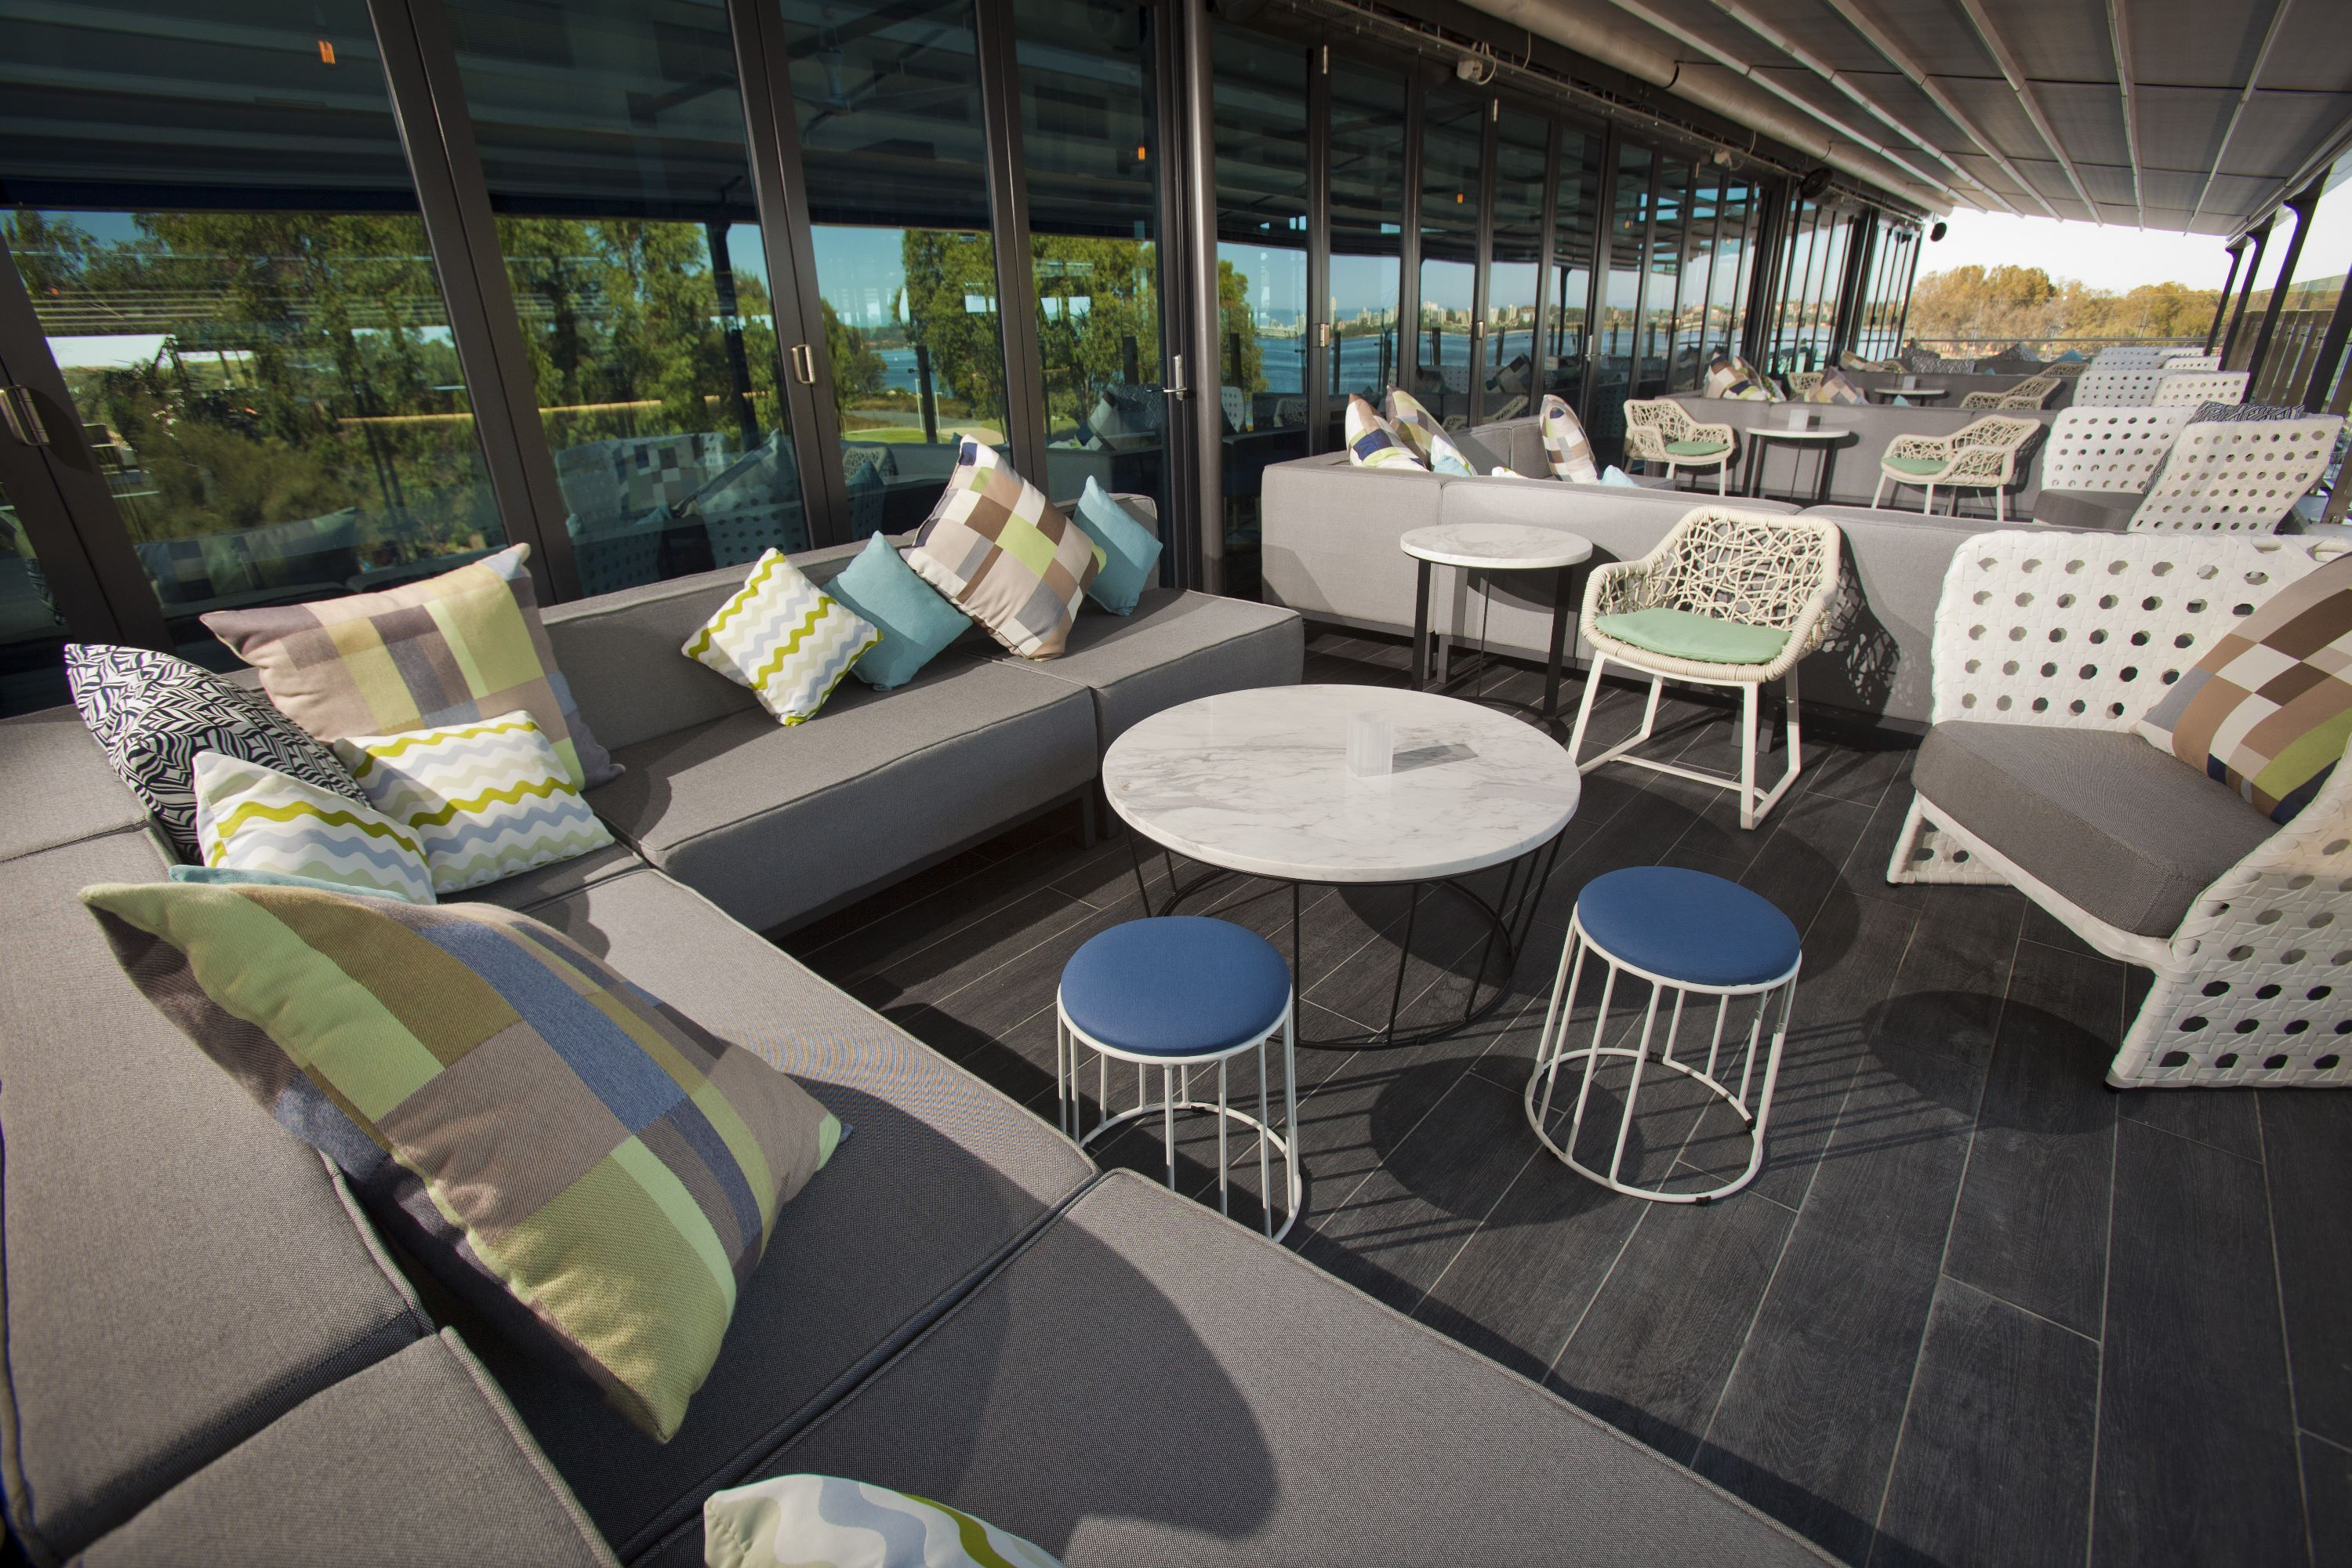 The Point Bar & Grill | Furniture Options. Modular lounge seating.